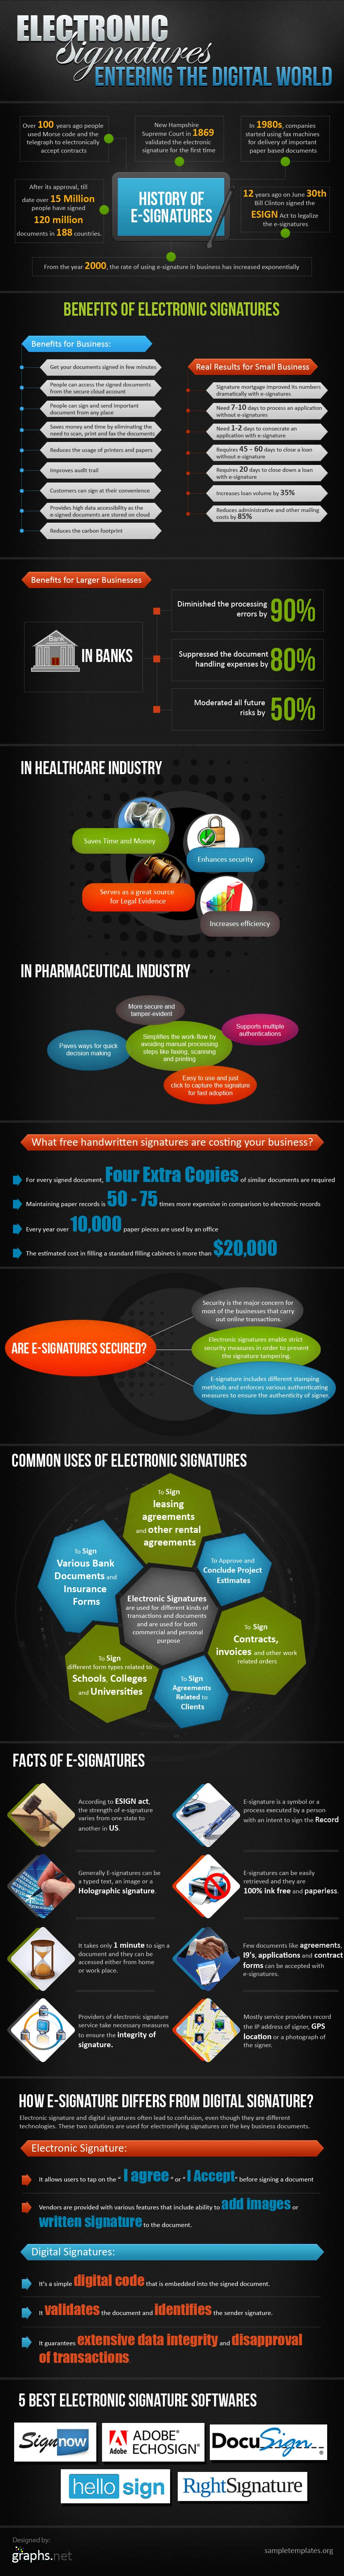 e-Signature Overview-Infographic